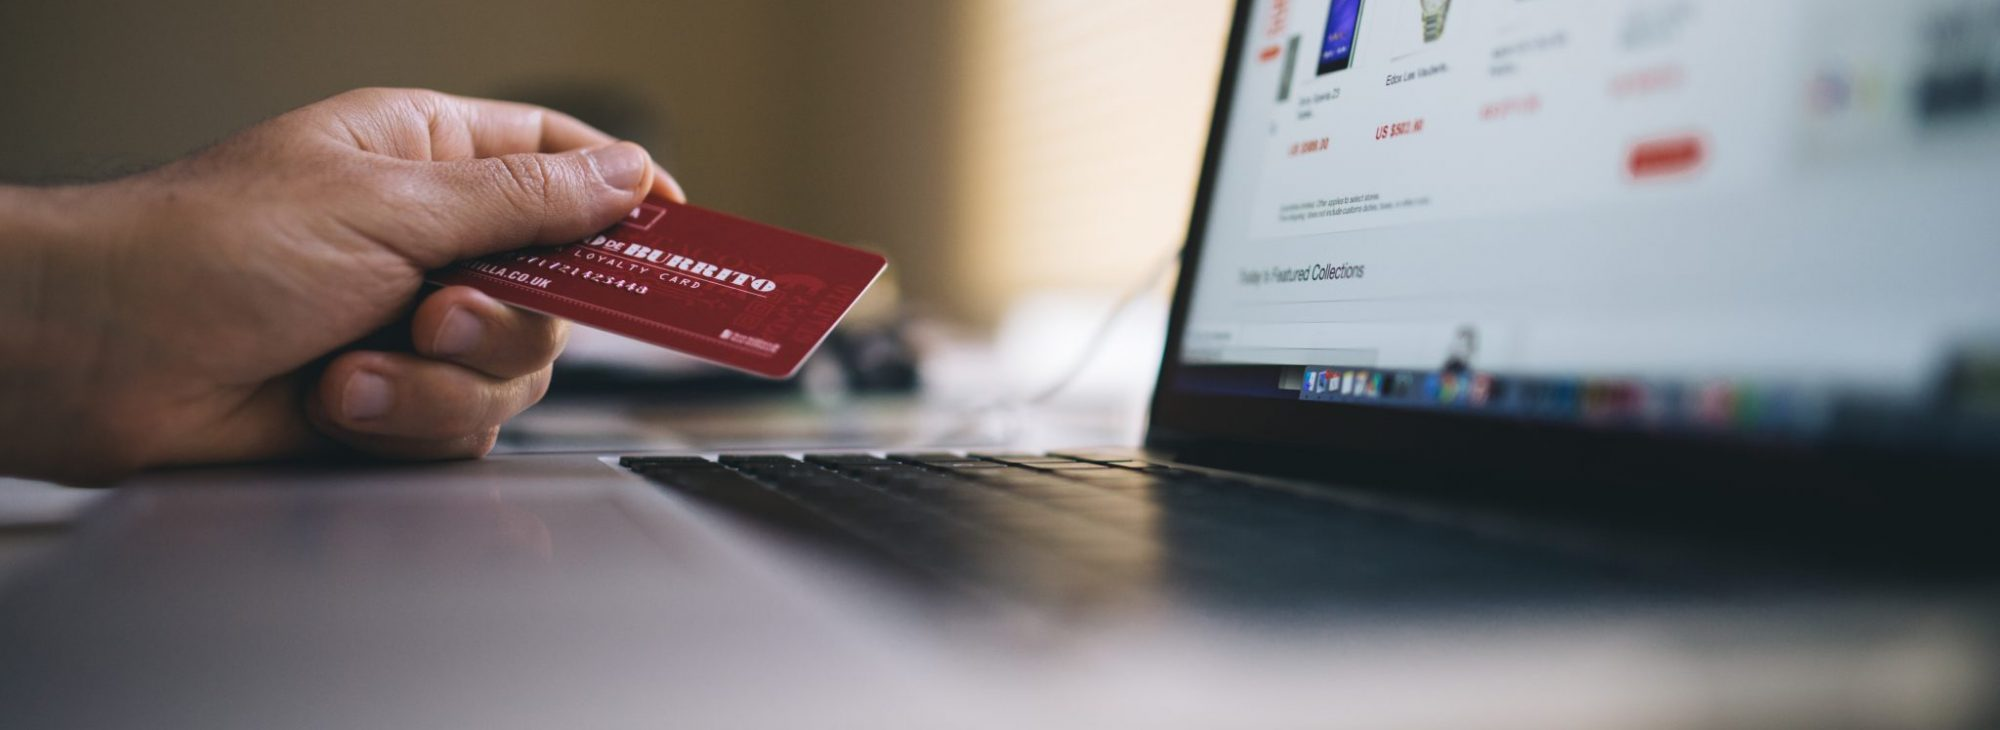 Online sales of electrical products in the UK worth £1.3bn ...